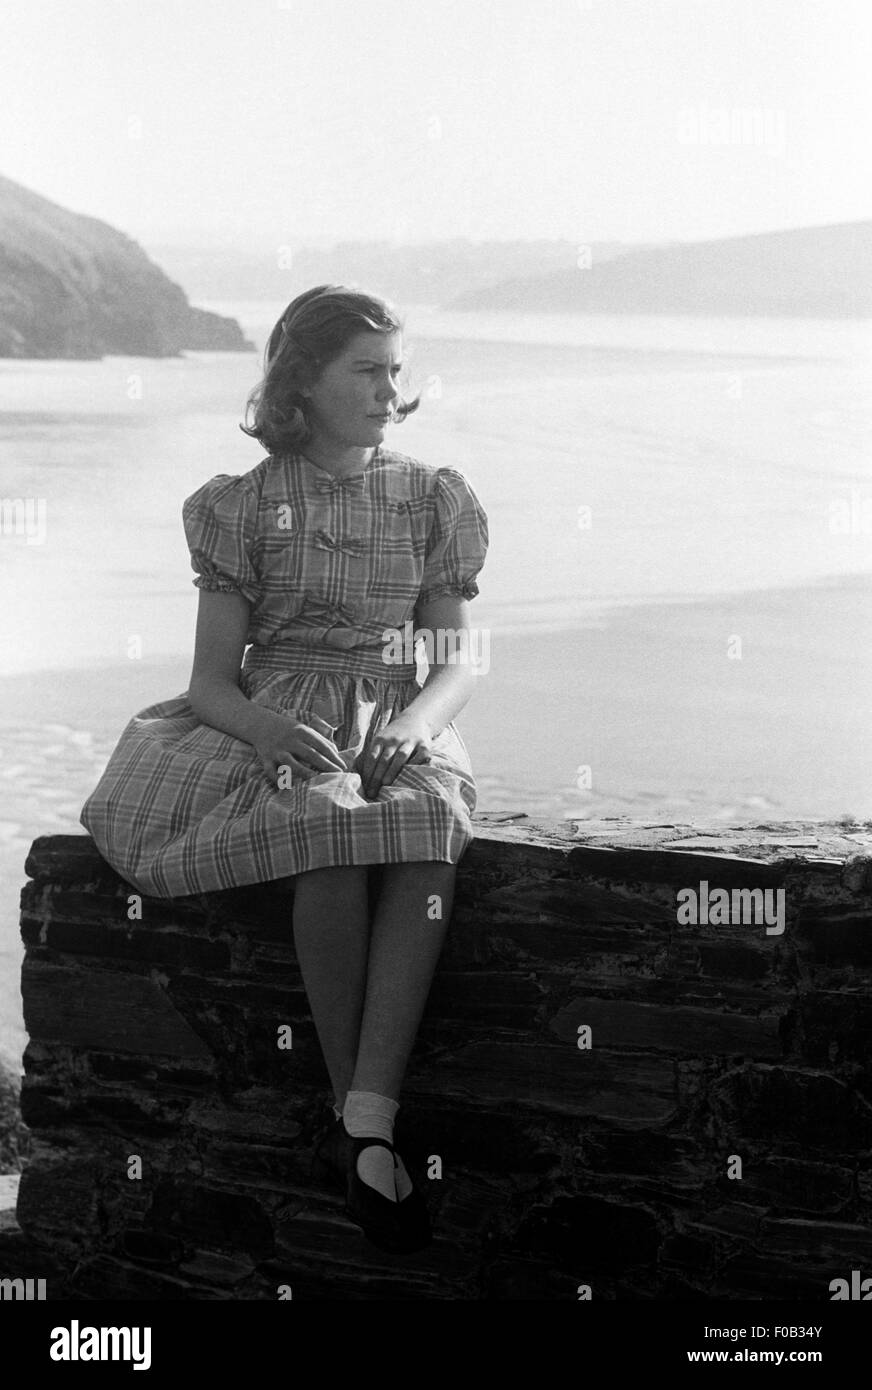 A young girl sitting on a wall at the seaside - Stock Image